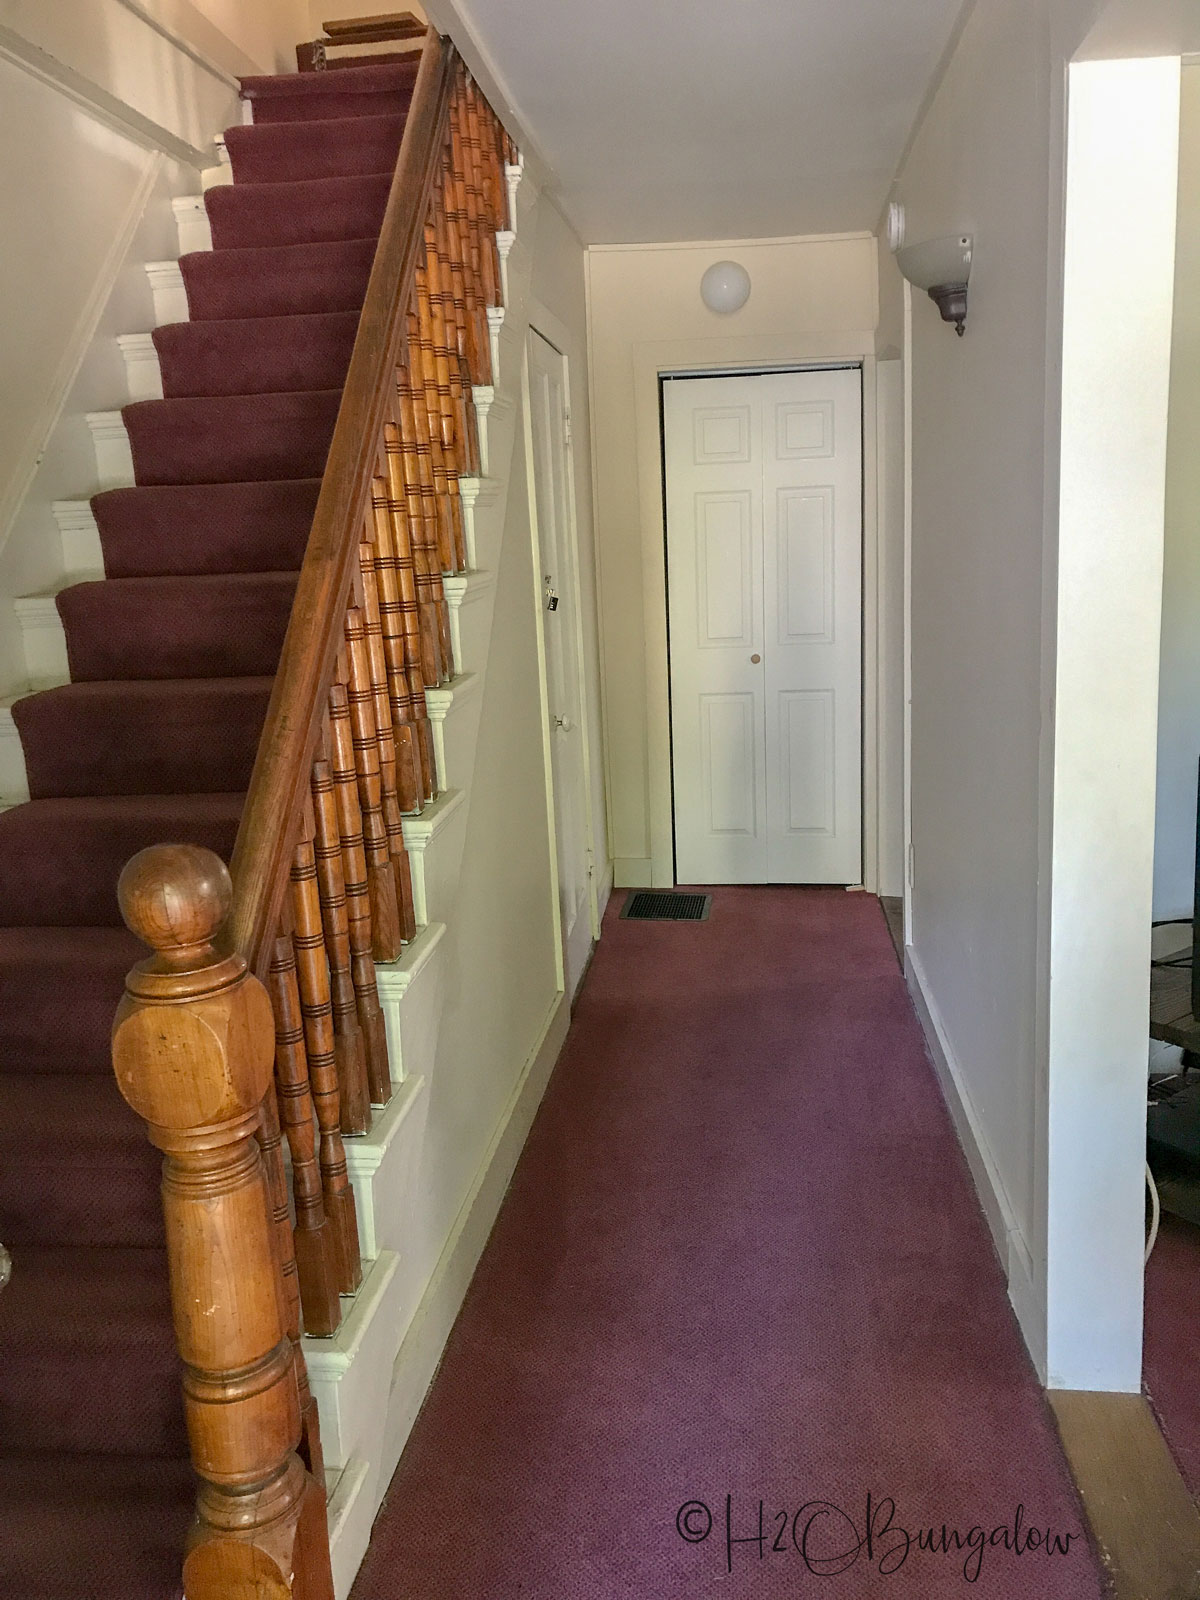 How To Install Carpet Runner On Stairs H2obungalow